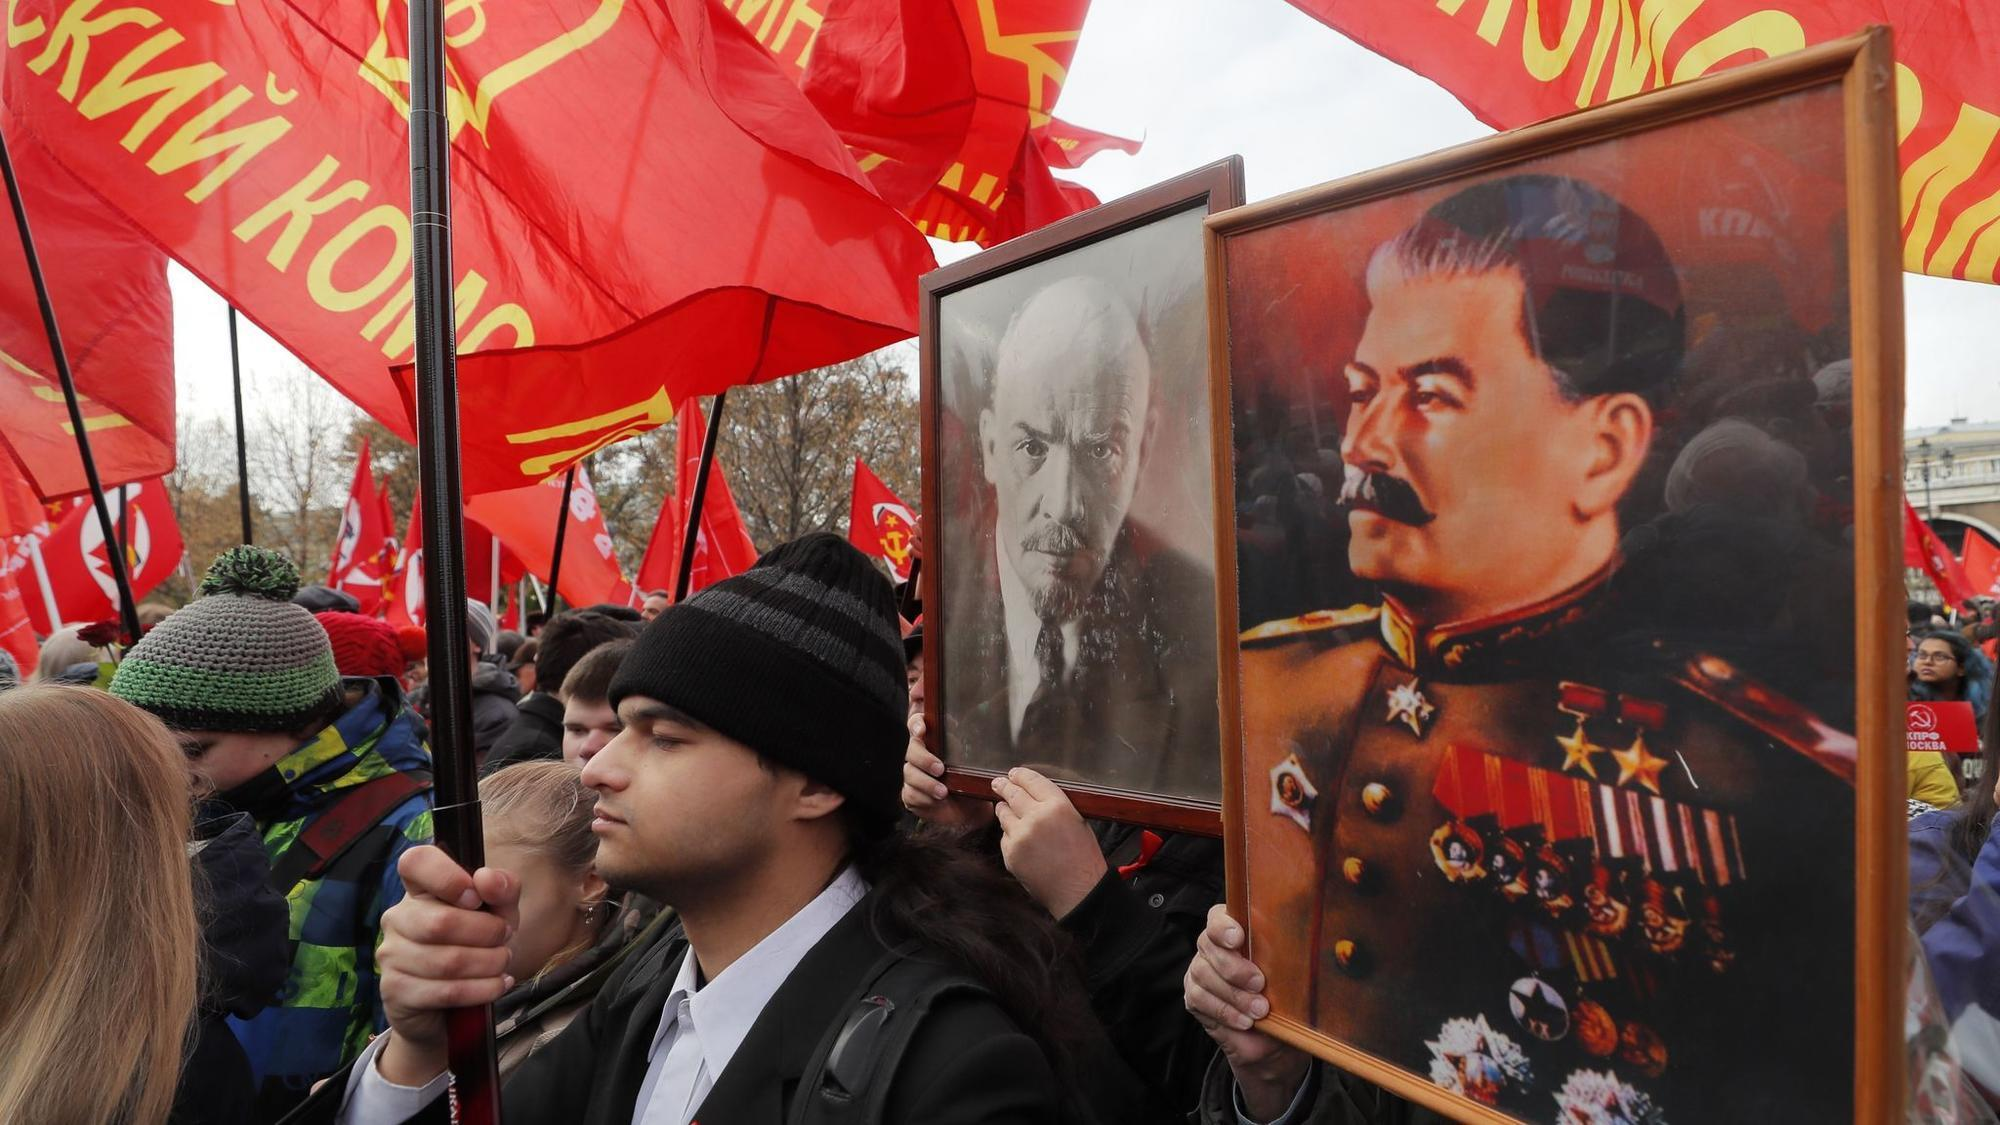 russia a legacy of communism Communism's legacy from soviet union to russia today the communist revolution in the soviet union led to a totalitarian dictatorship that killed or imprisoned tens of millions of people it was a period of cruelty that has not been forgotten in russia today.